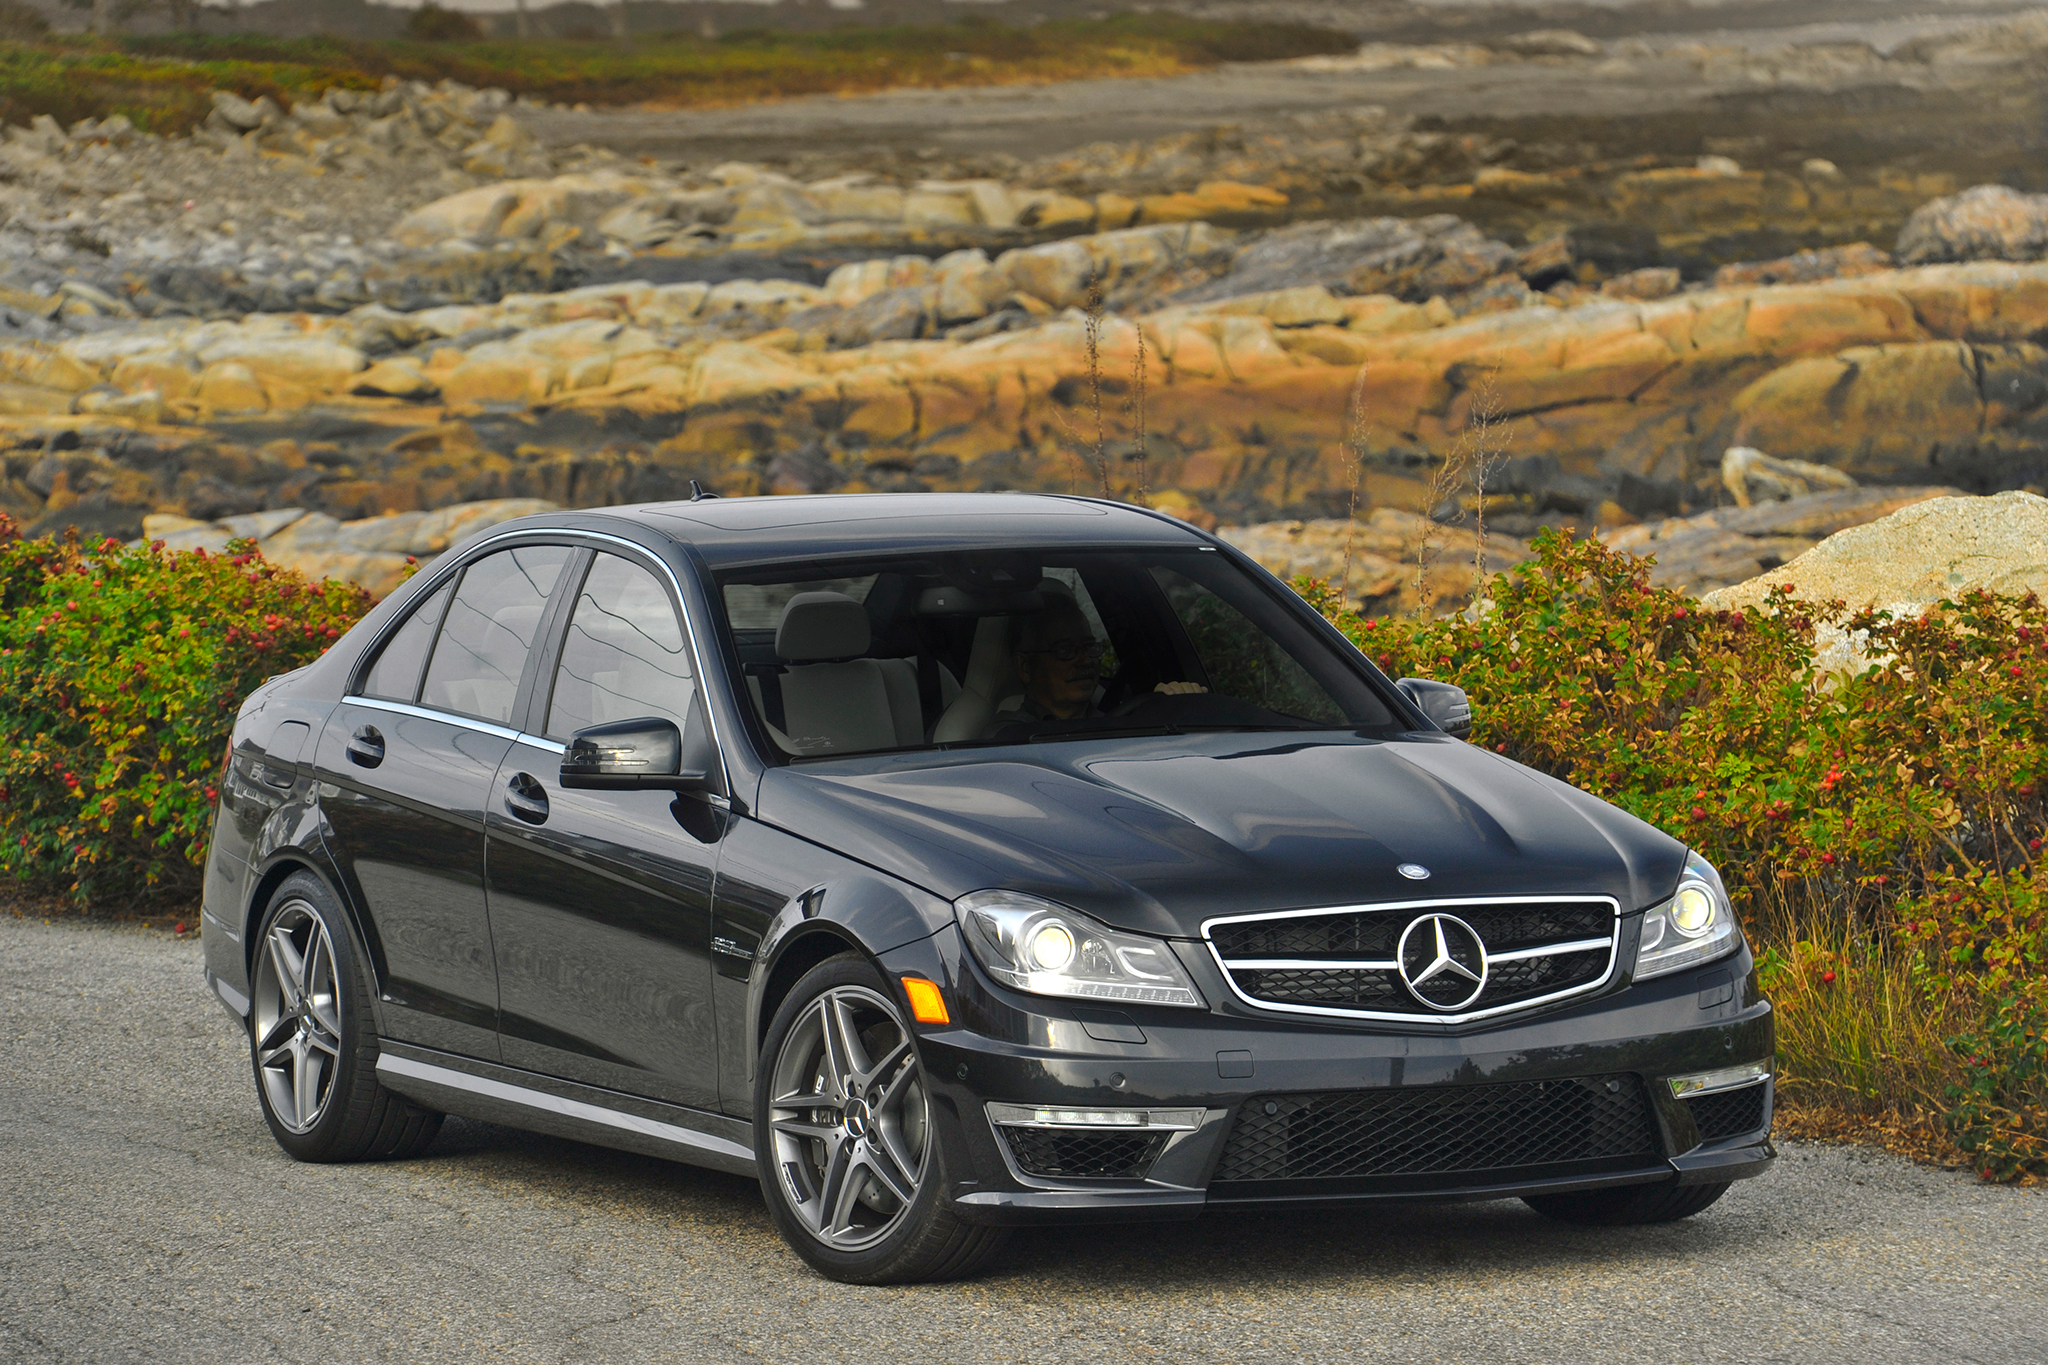 We Hear: 2015 Mercedes-Benz C63 AMG to Get 4.0L Twin-Turbo V-8